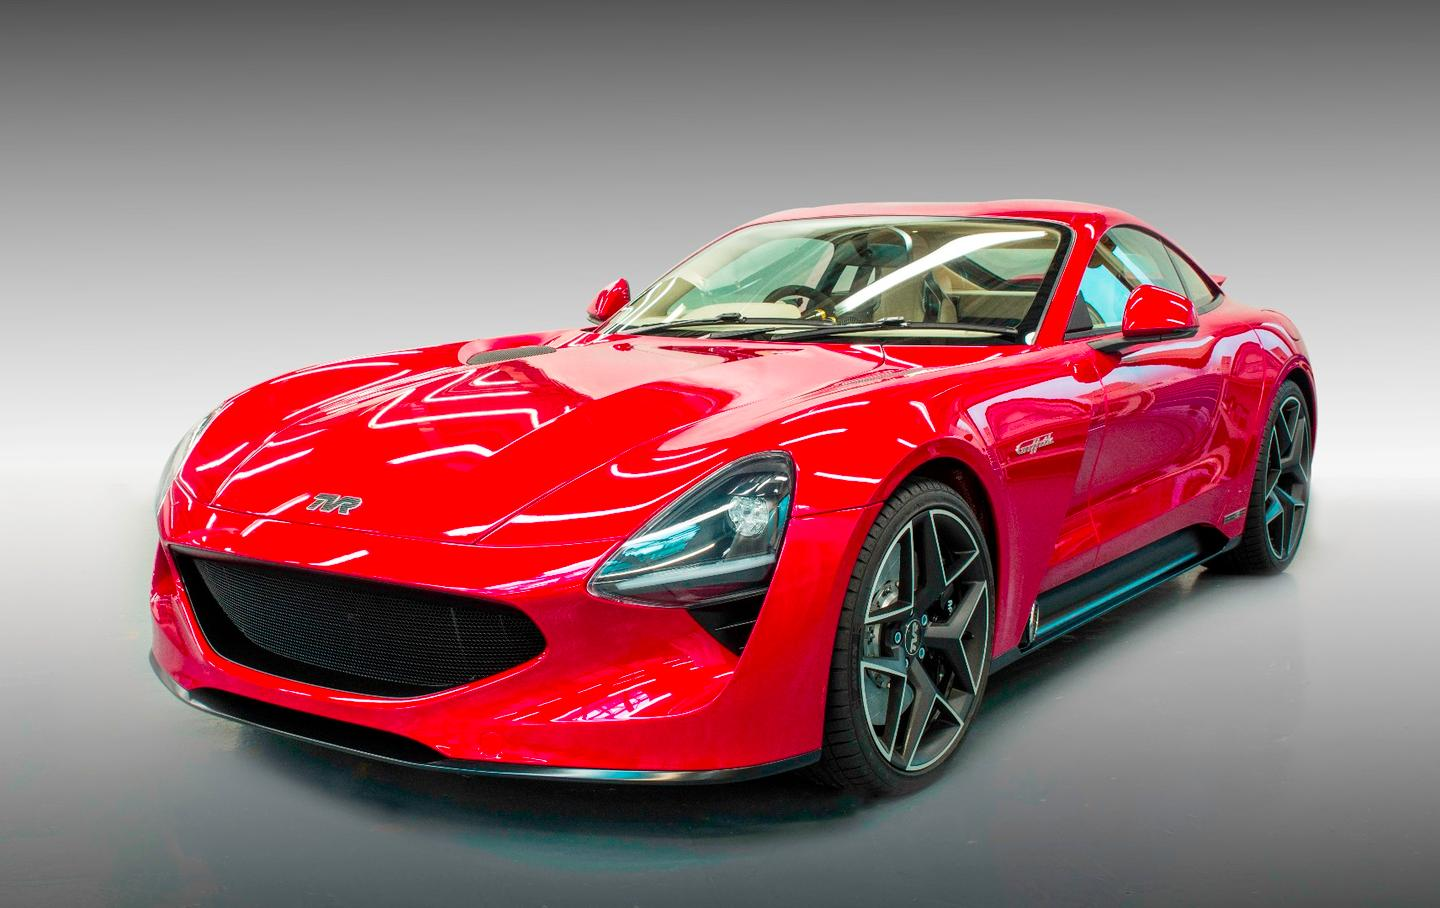 The TVR Griffith was unveiled this Friday